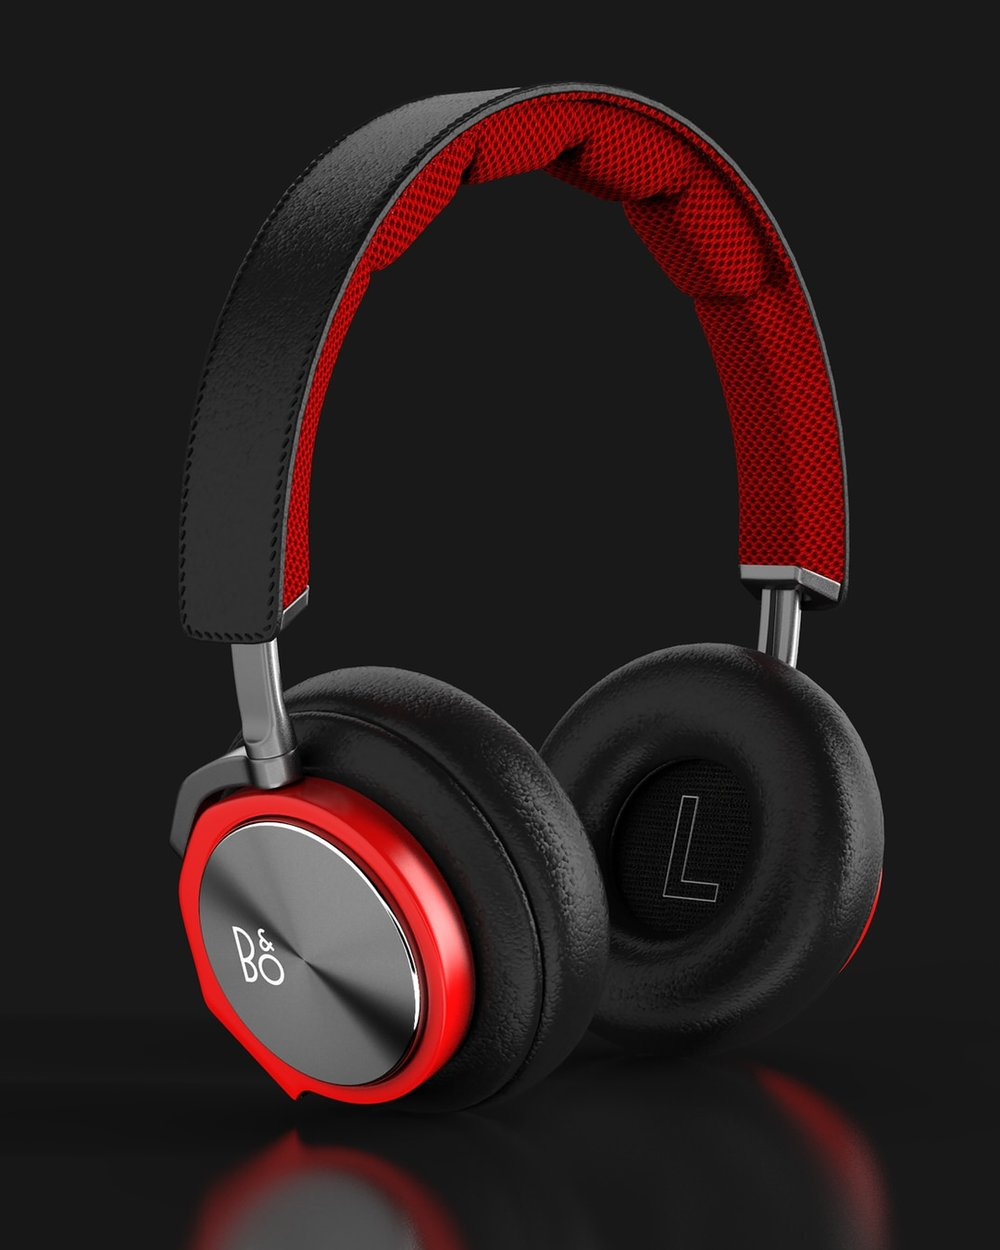 Product photograph of Beoplay headsets on black